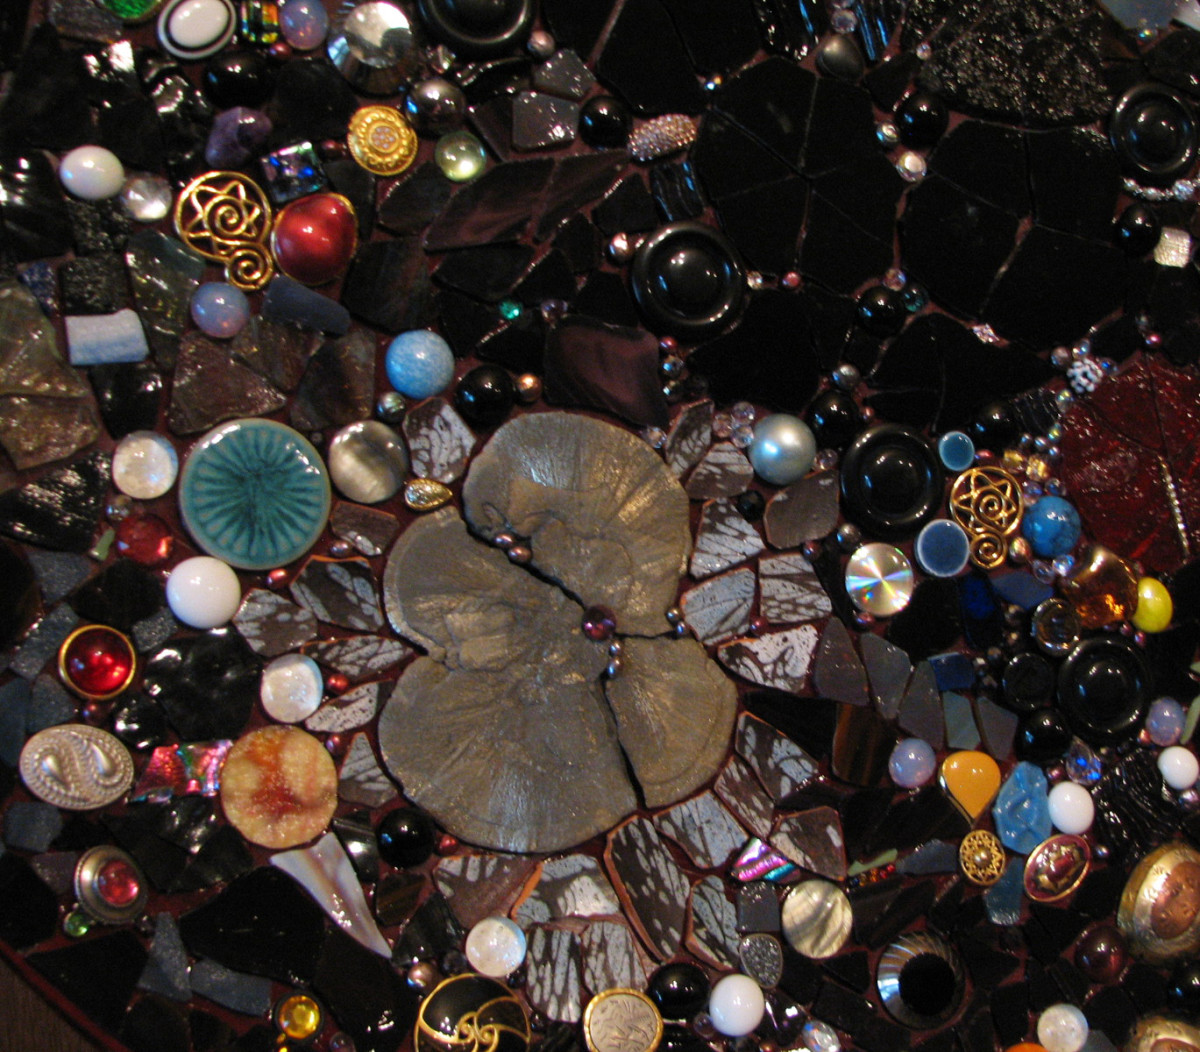 Outer space mosaic, contains an iron pyrite flower, glass globs, stained glass, glass cabochons, broken pottery, ceramic tile, costume jewelry, crystals, amethyst, pearls